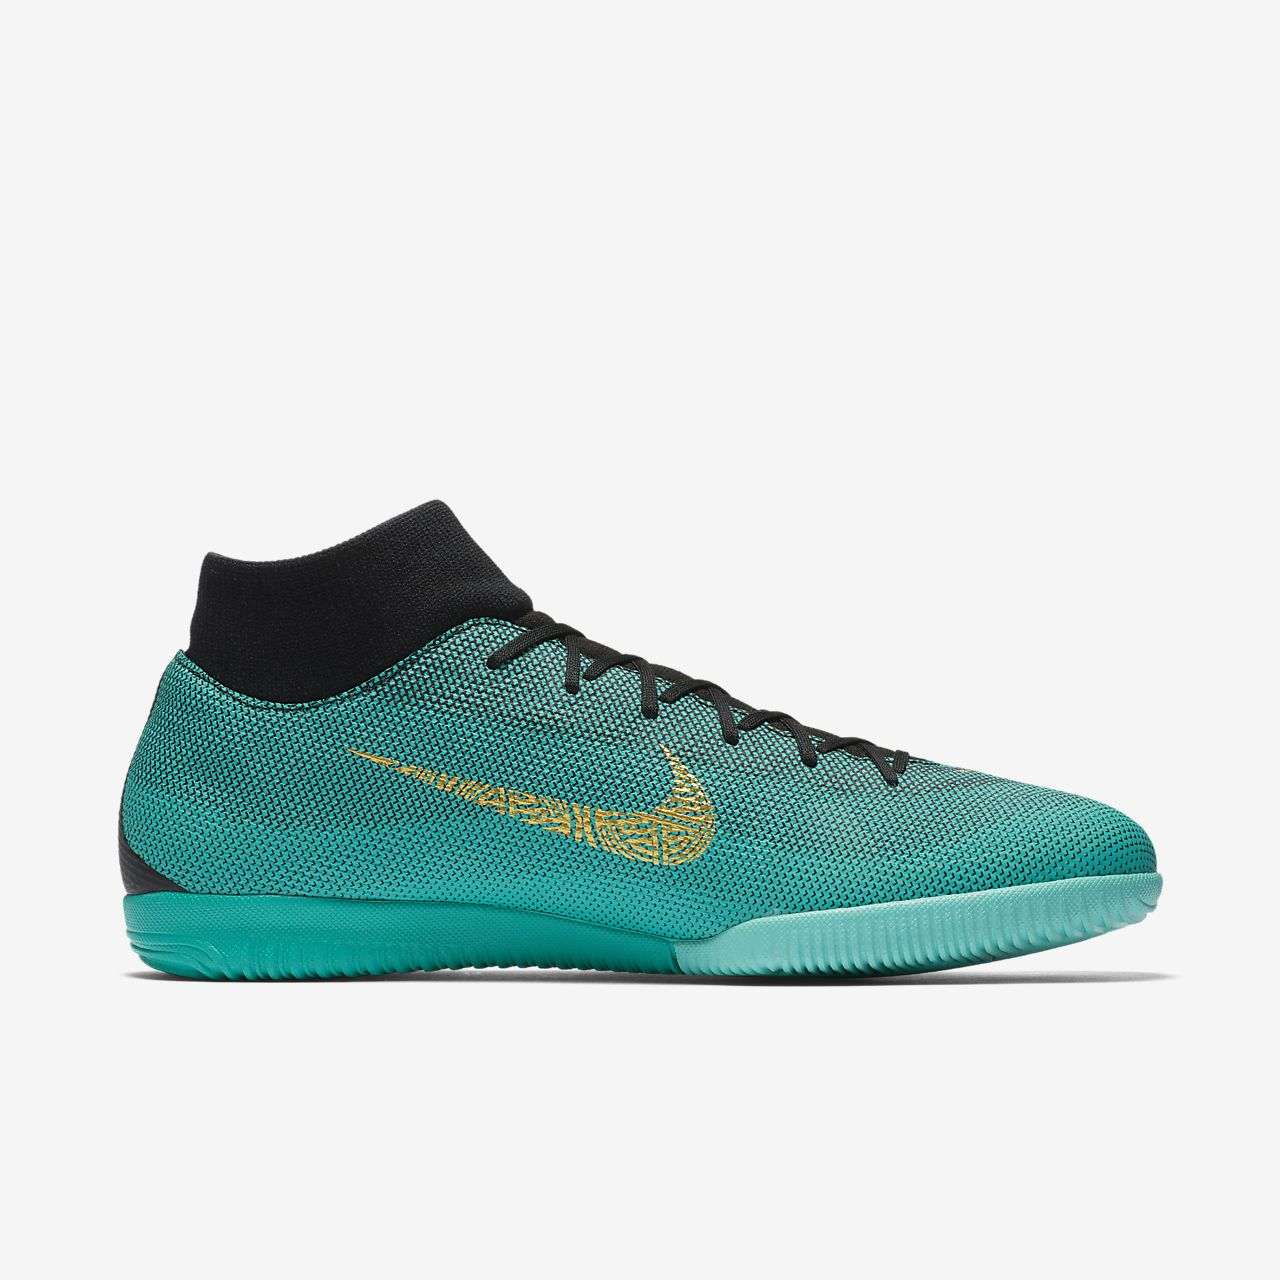 ... Nike MercurialX Superfly VI Academy CR7 IC Indoor/Court Soccer Shoe